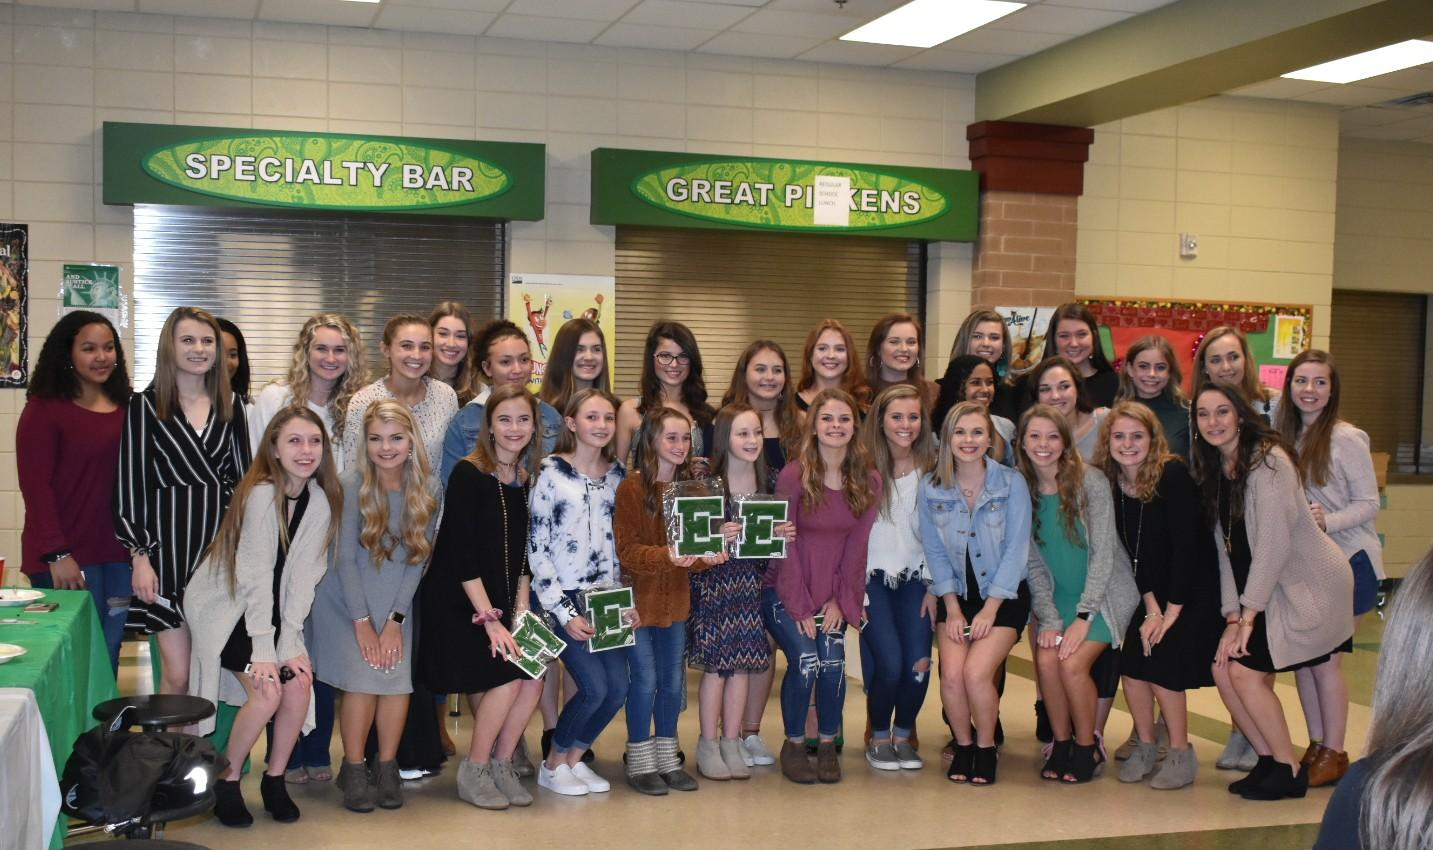 Cheer holds end of season banquet